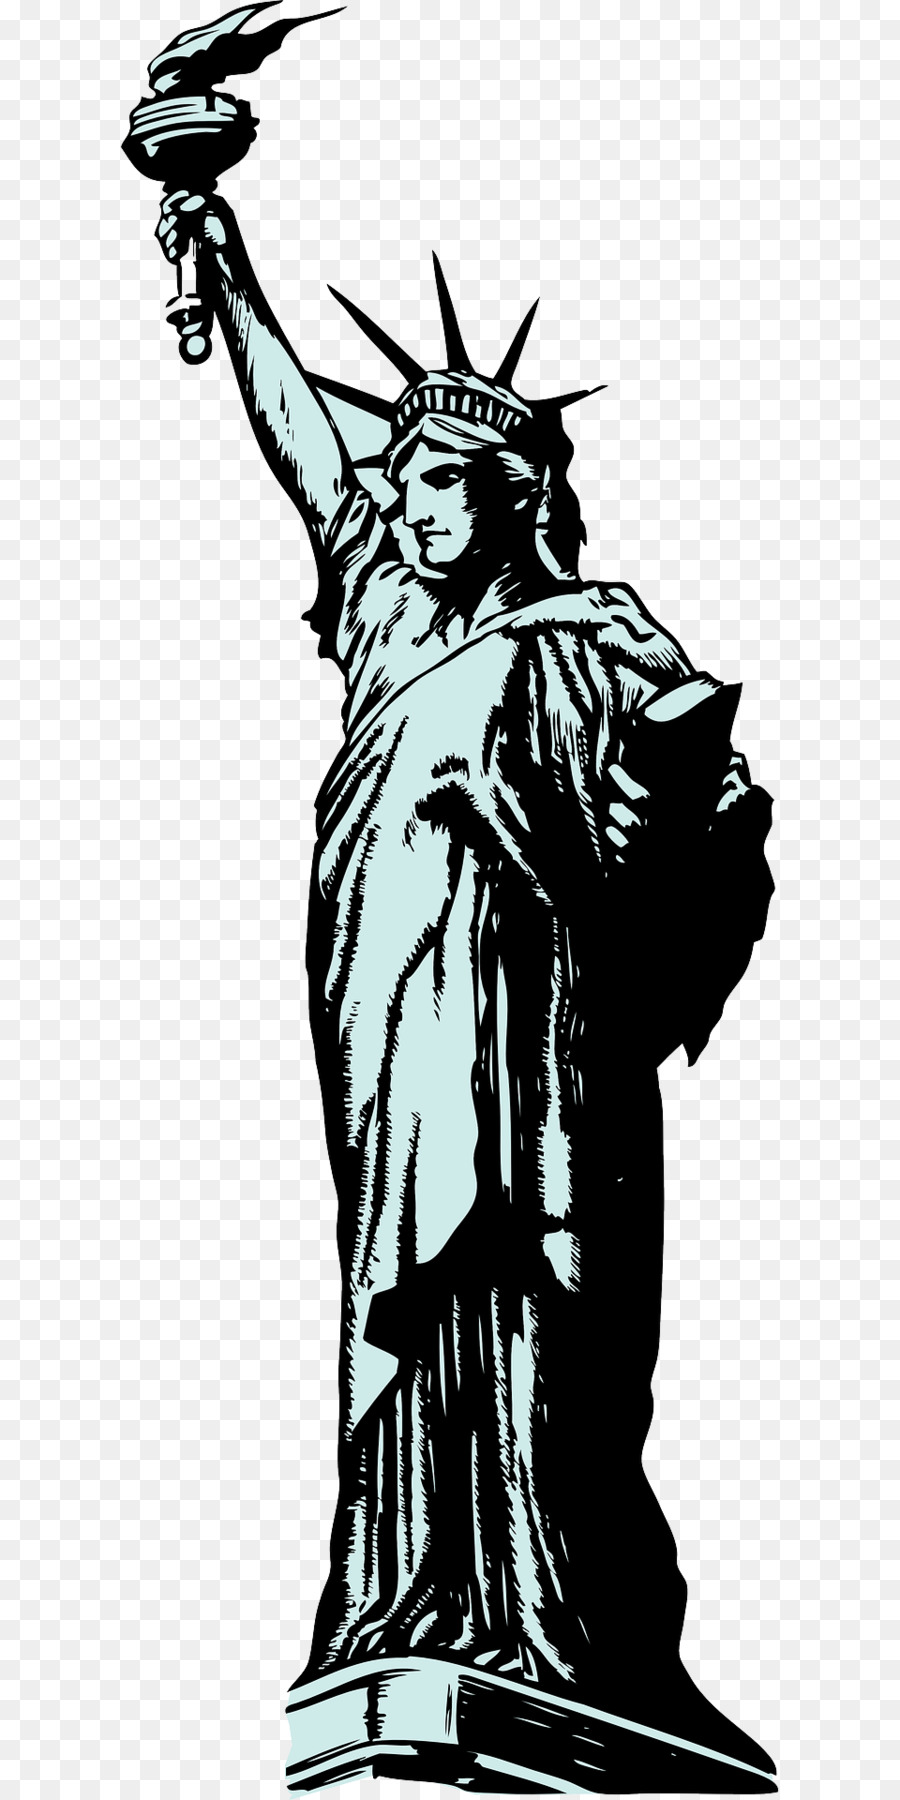 statue of liberty clip art the torch of the goddess png download rh kisspng com statue of liberty clipart images statue of liberty clipart free